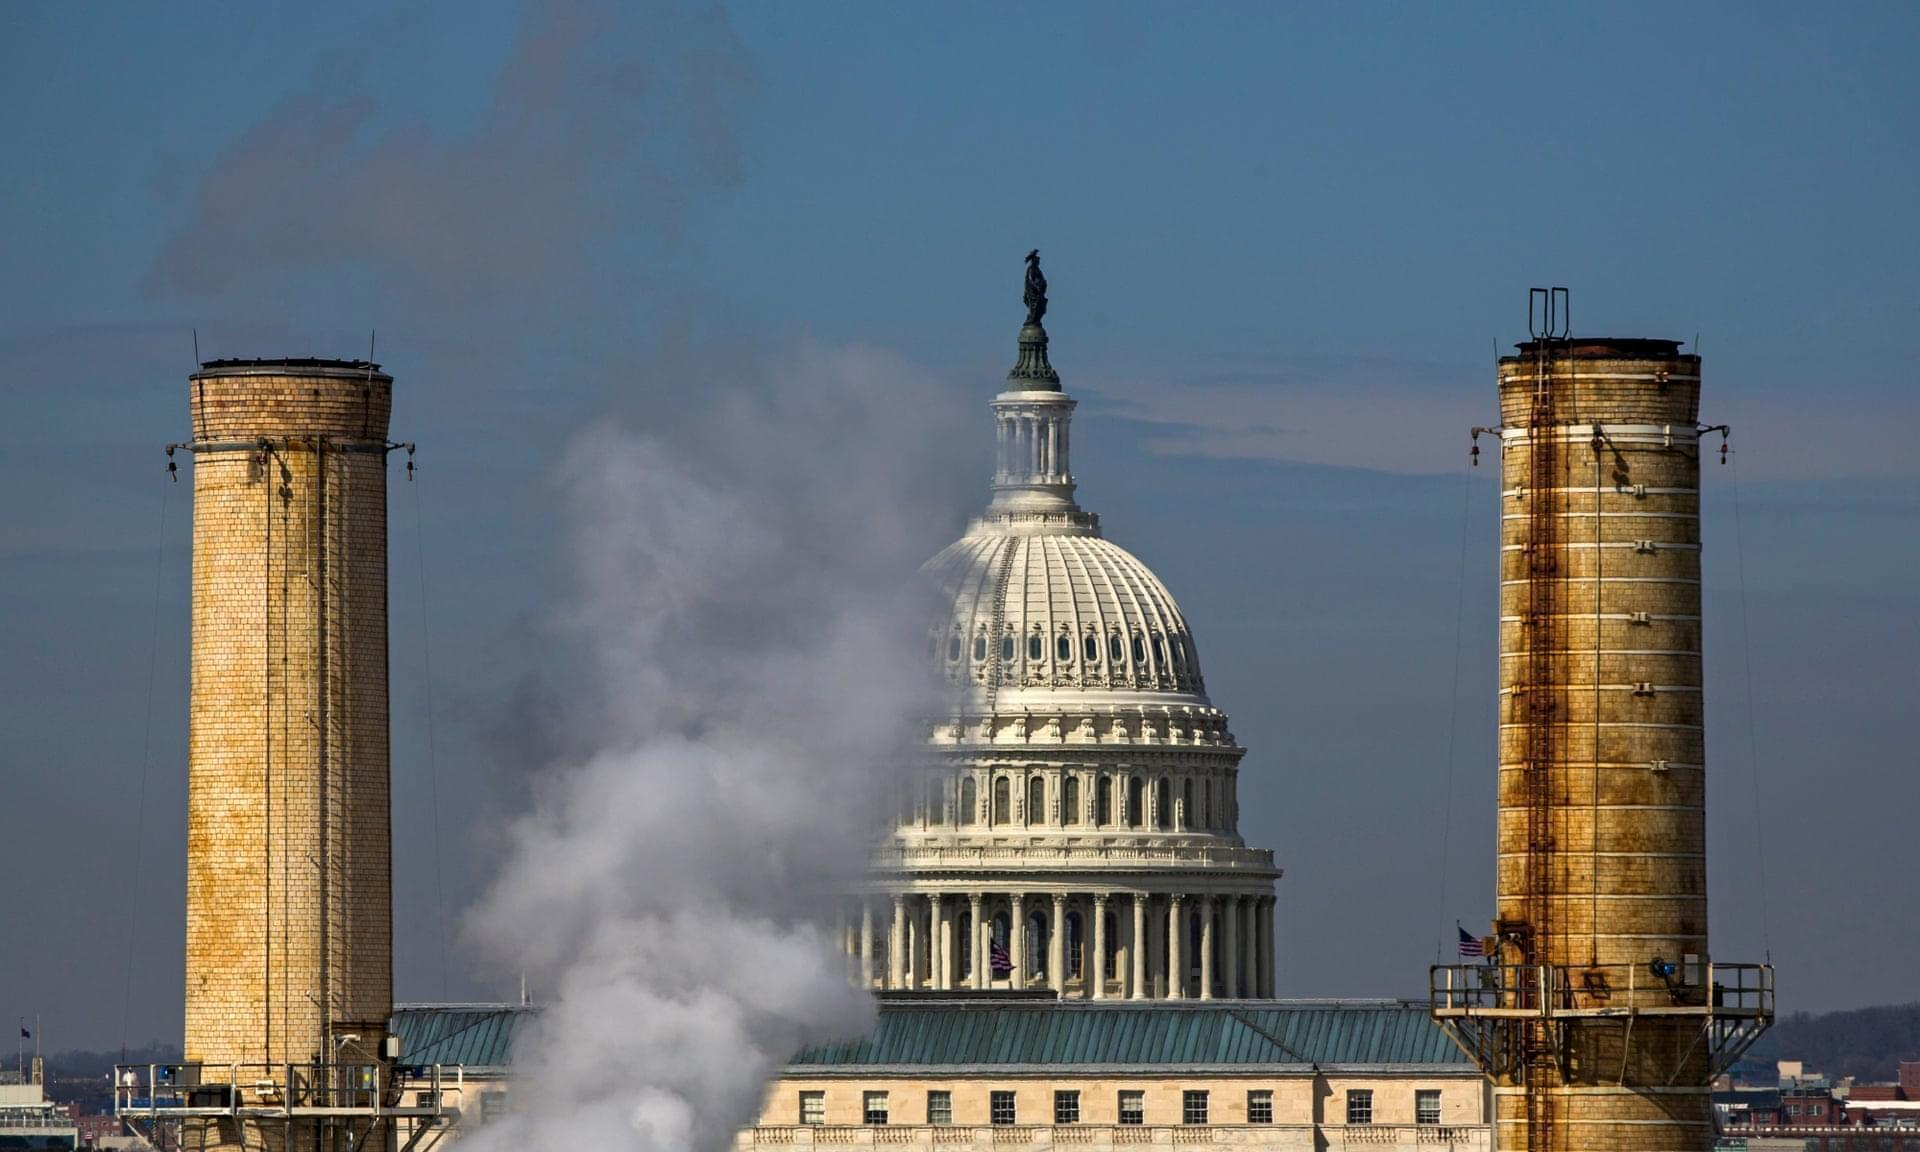 The dome of the US Capitol is seen behind the smokestacks of the Capitol Power Plant, a coal-burning plant in Washington DC.